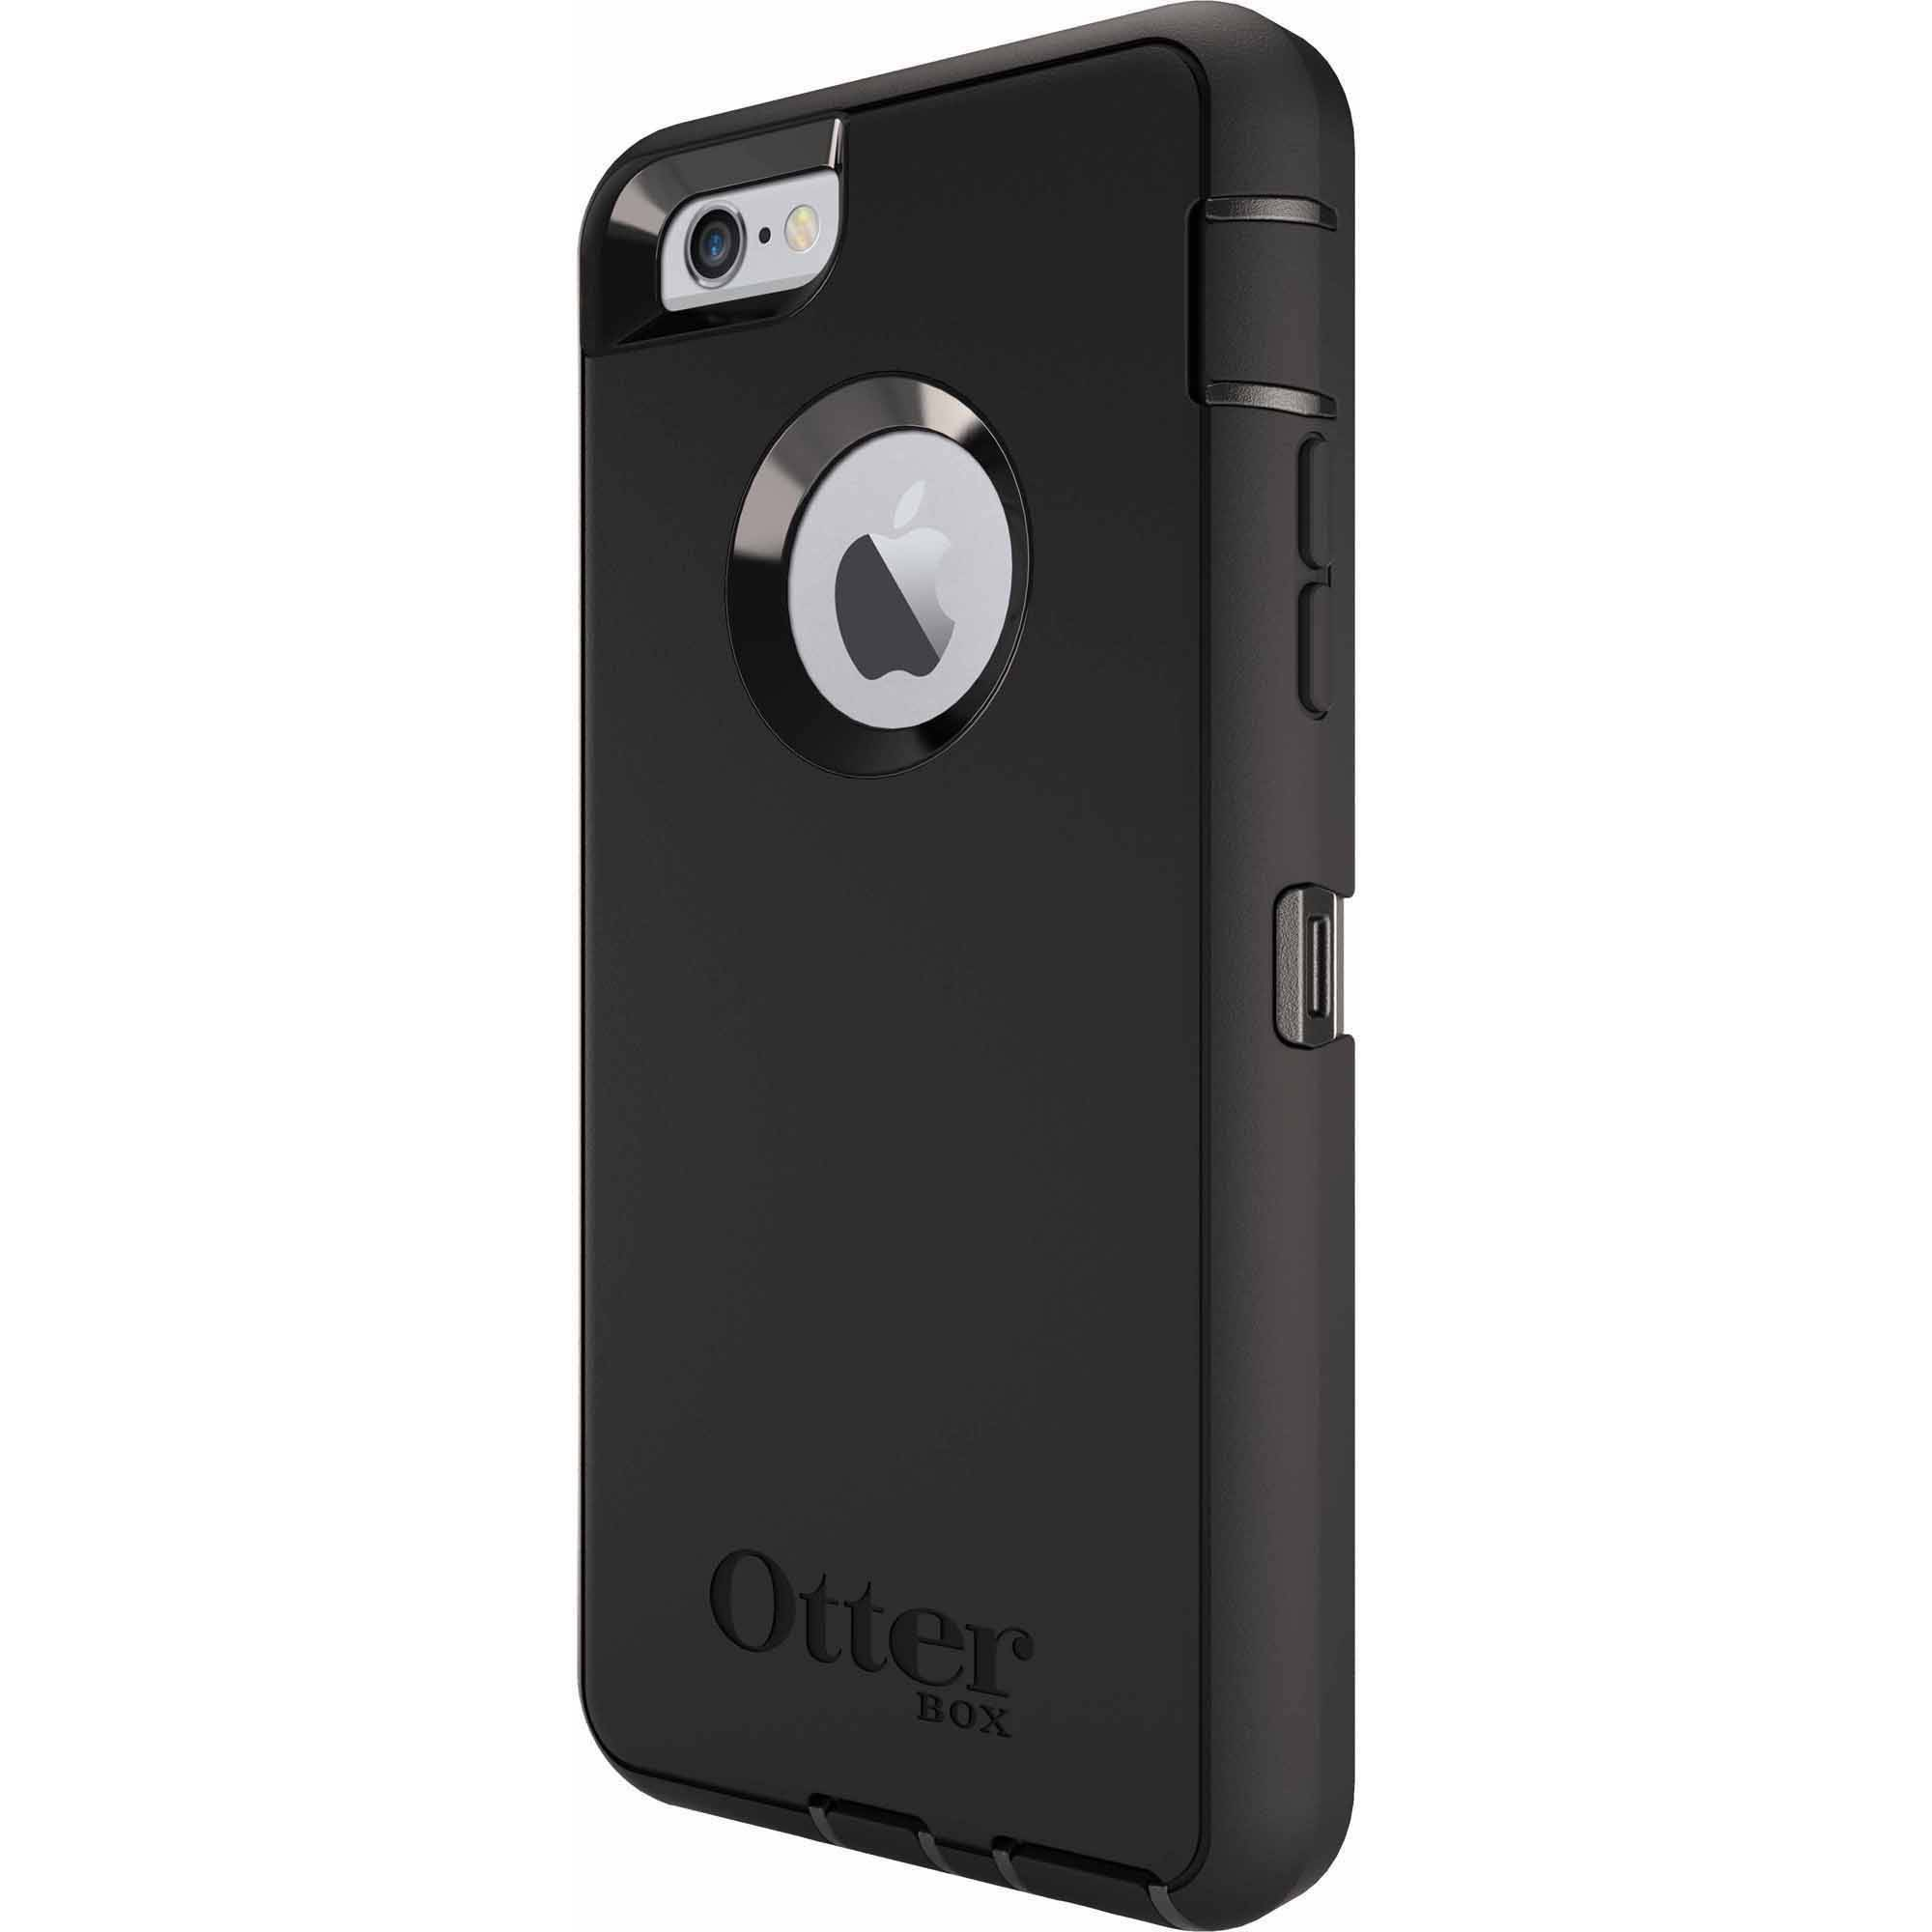 8f1e754e5099 OtterBox Defender Series Case for iPhone 6 6s